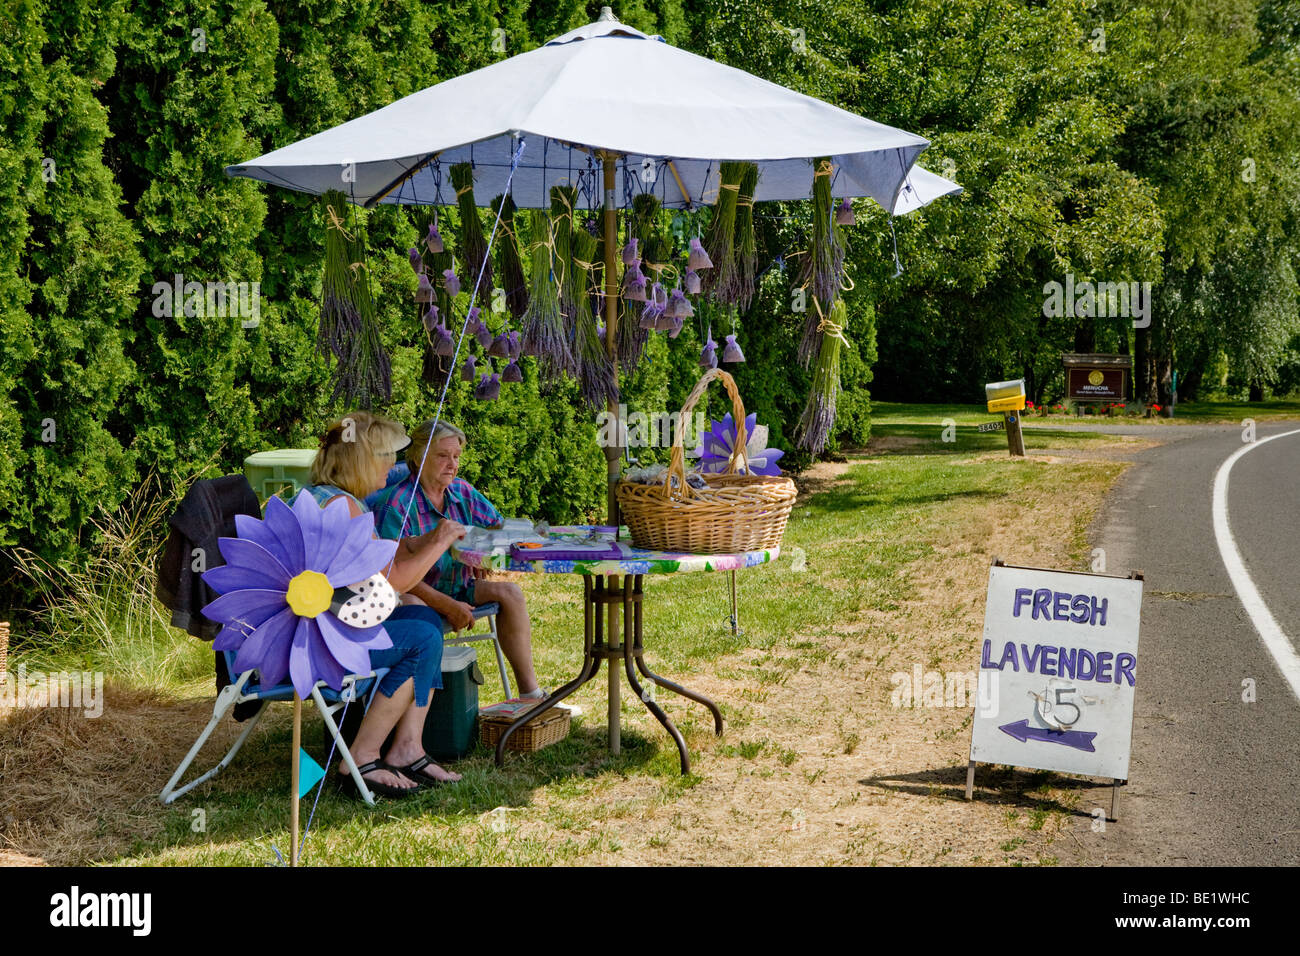 Two women selling fresh lavender near Columbia River Gorge, Oregon - Stock Image